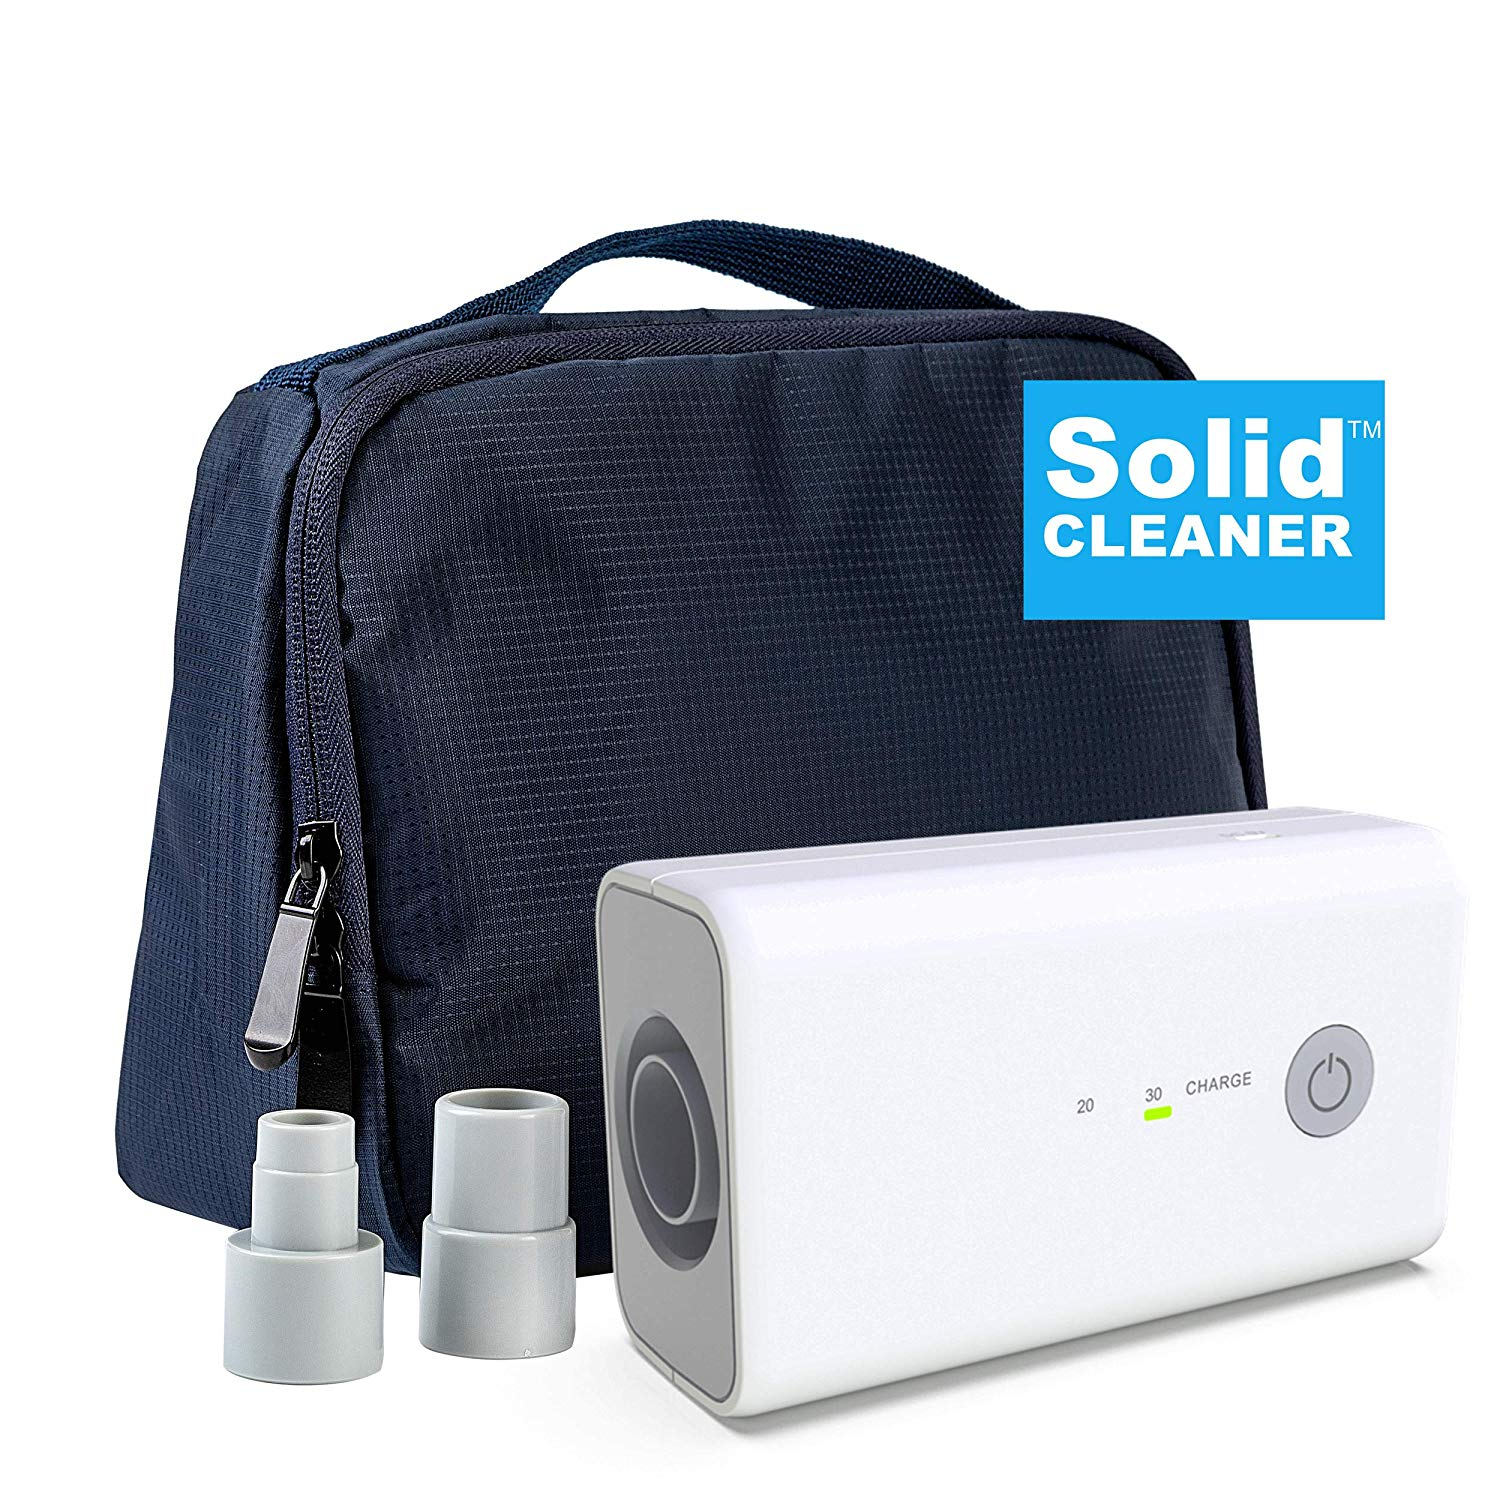 CPAP Cleaner Reviews And Buying Guide For 2019 - SnoreMagazine